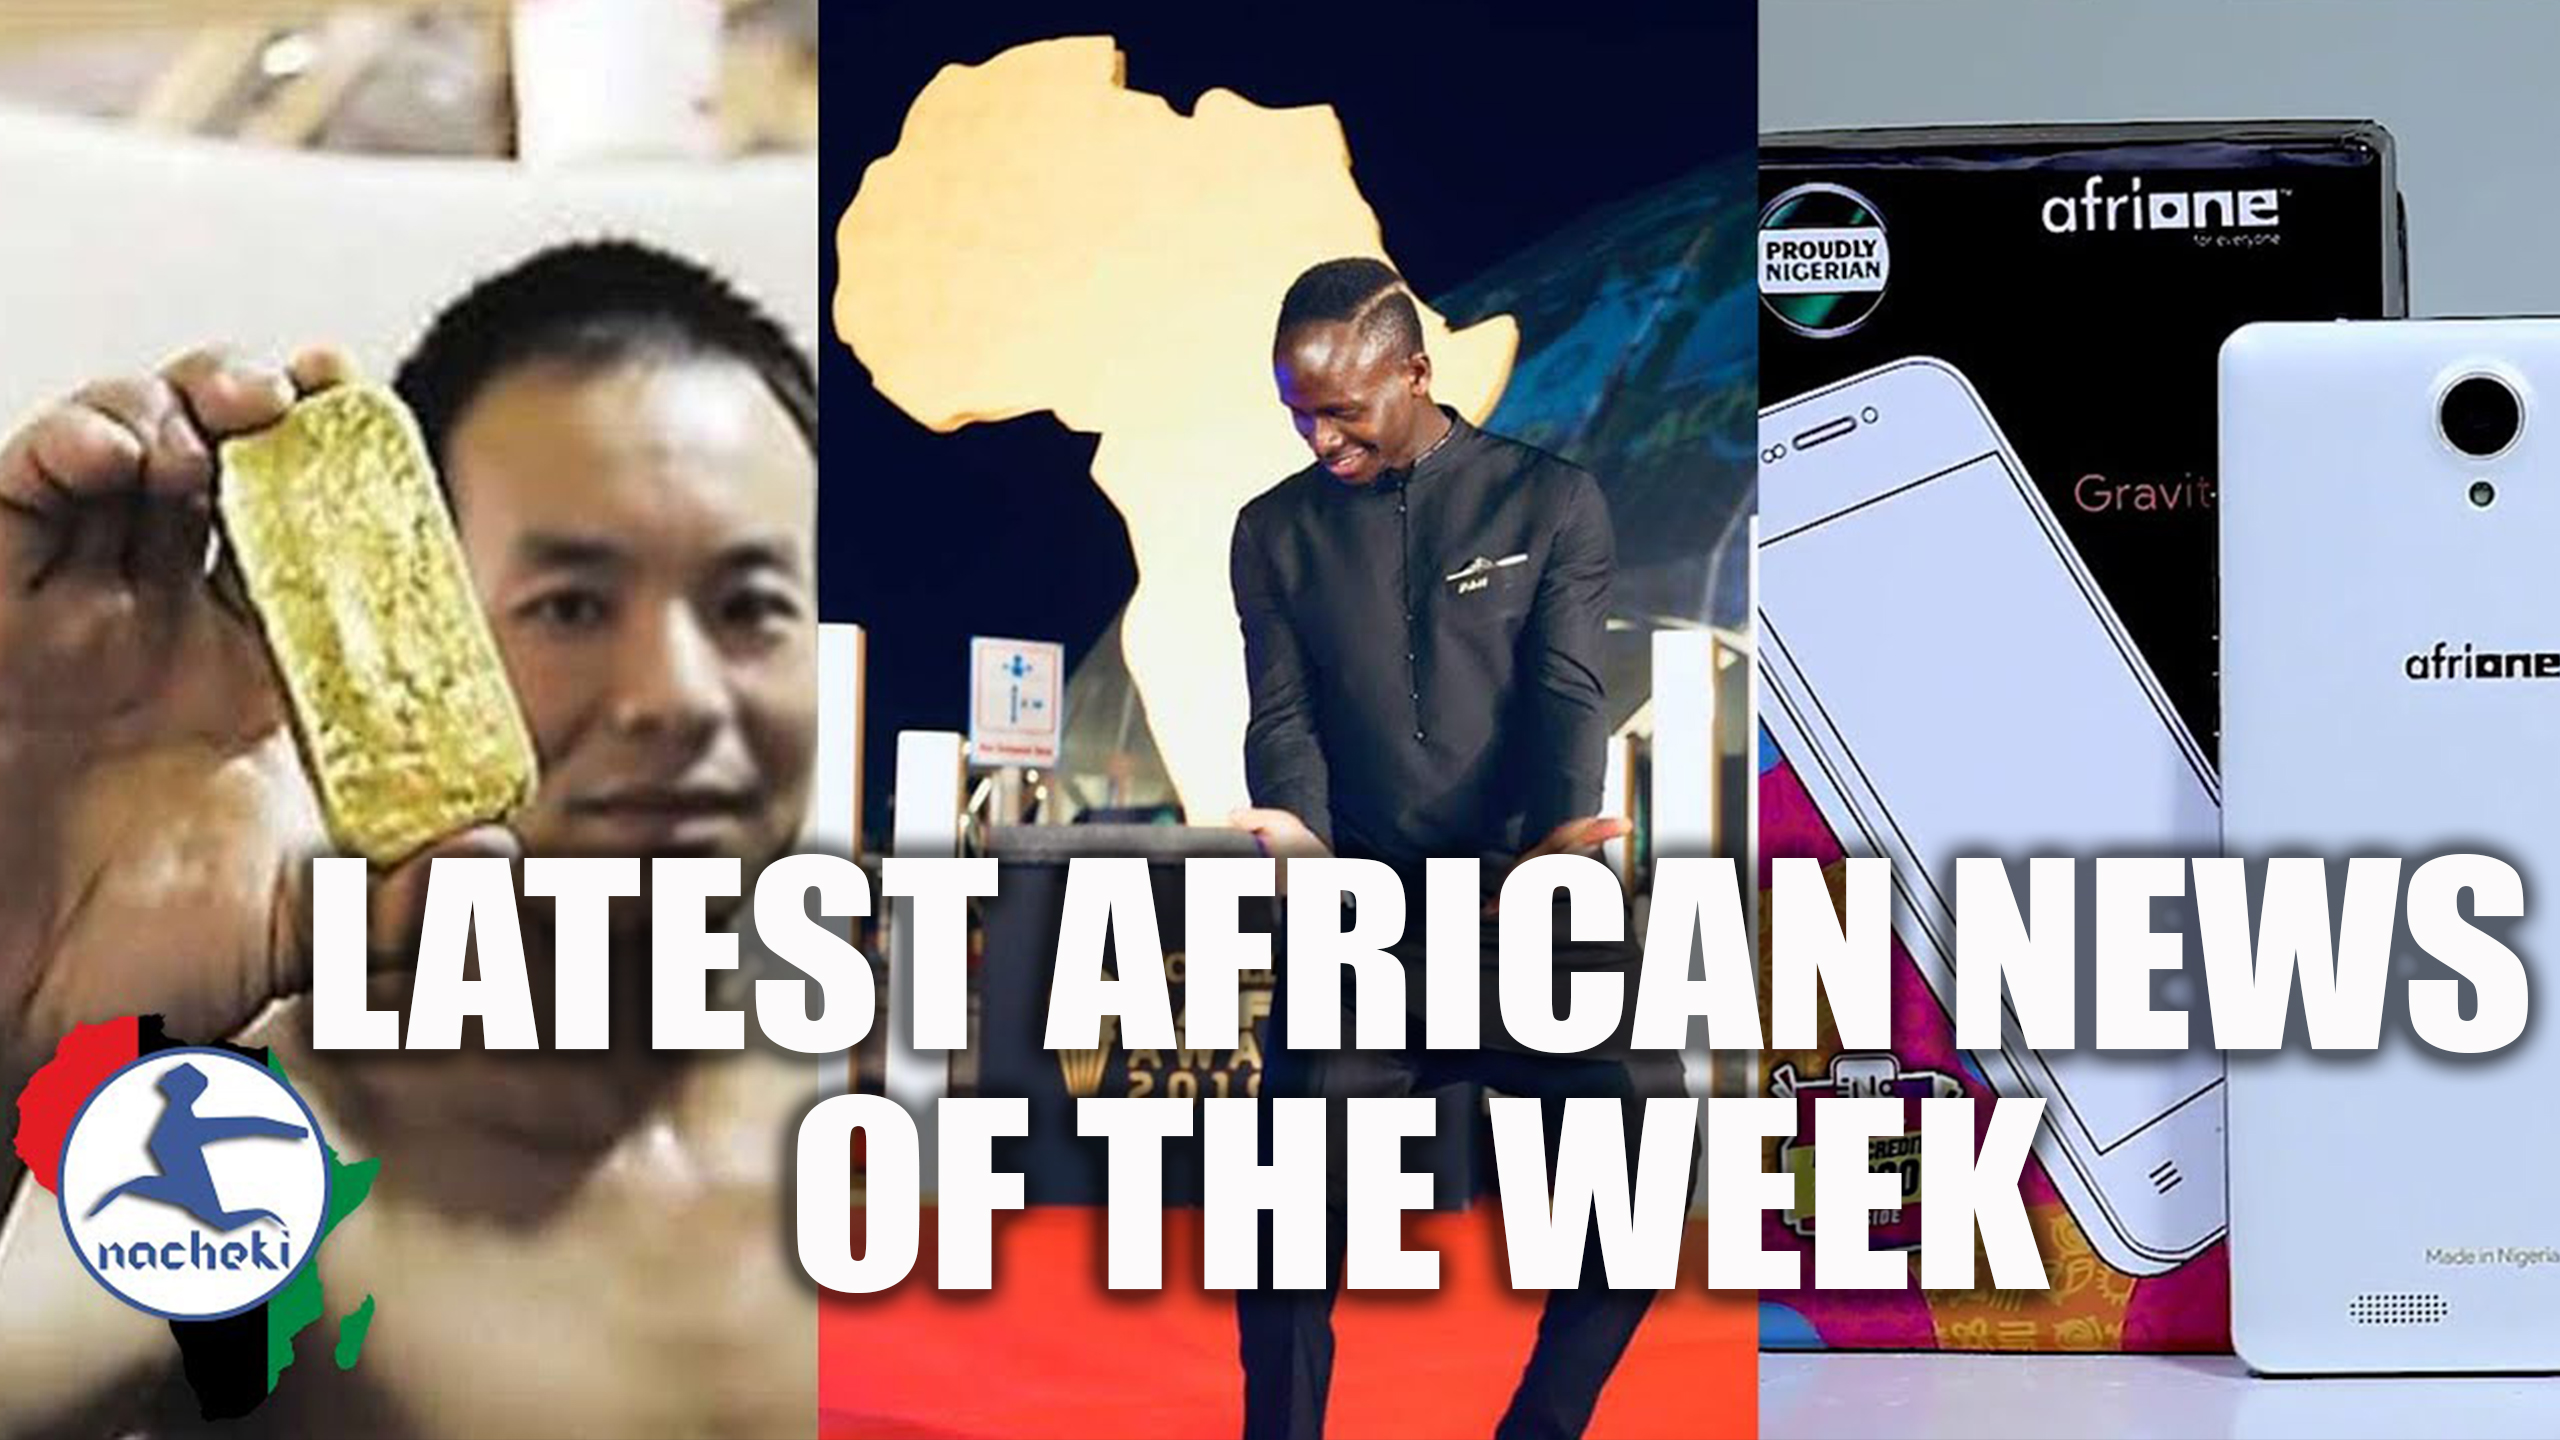 LATEST AFRICA NEWS OF THE WEEK